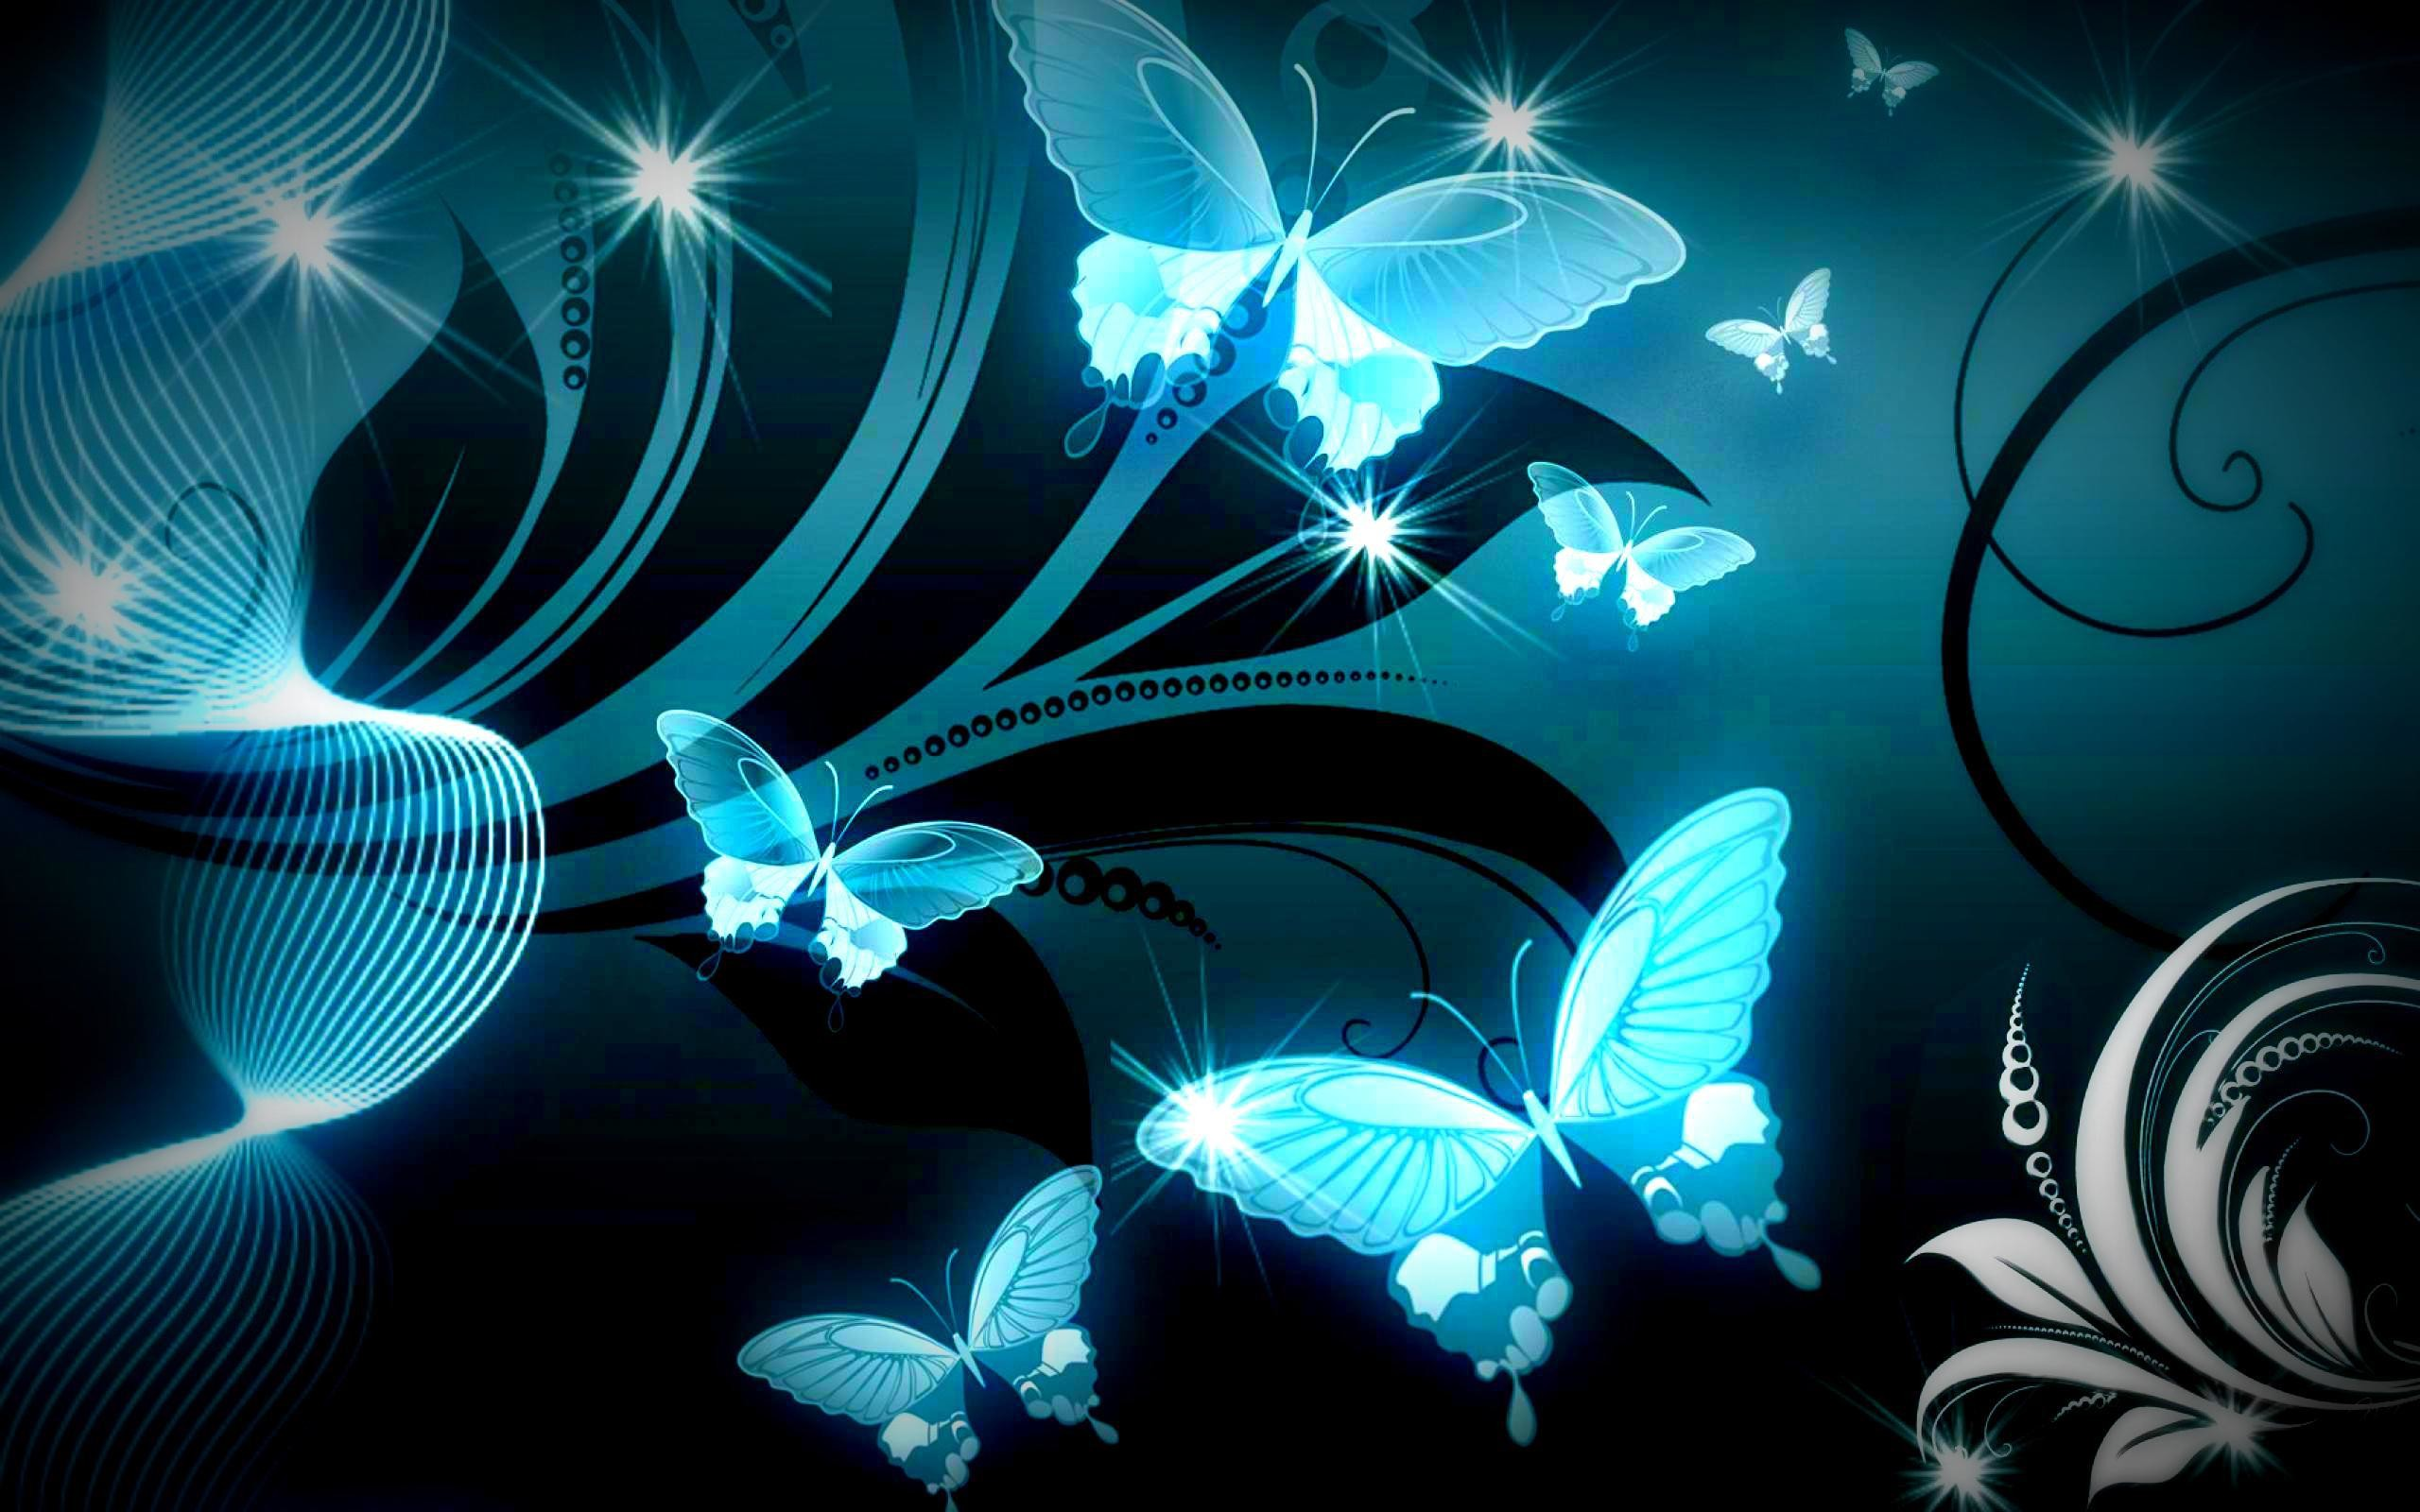 Butterfly Screensavers and Wallpapers  53  images  2560x1600 SPARKLE BLUE BUTTERFLIES WALLPAPER     117796    HD Wallpapers